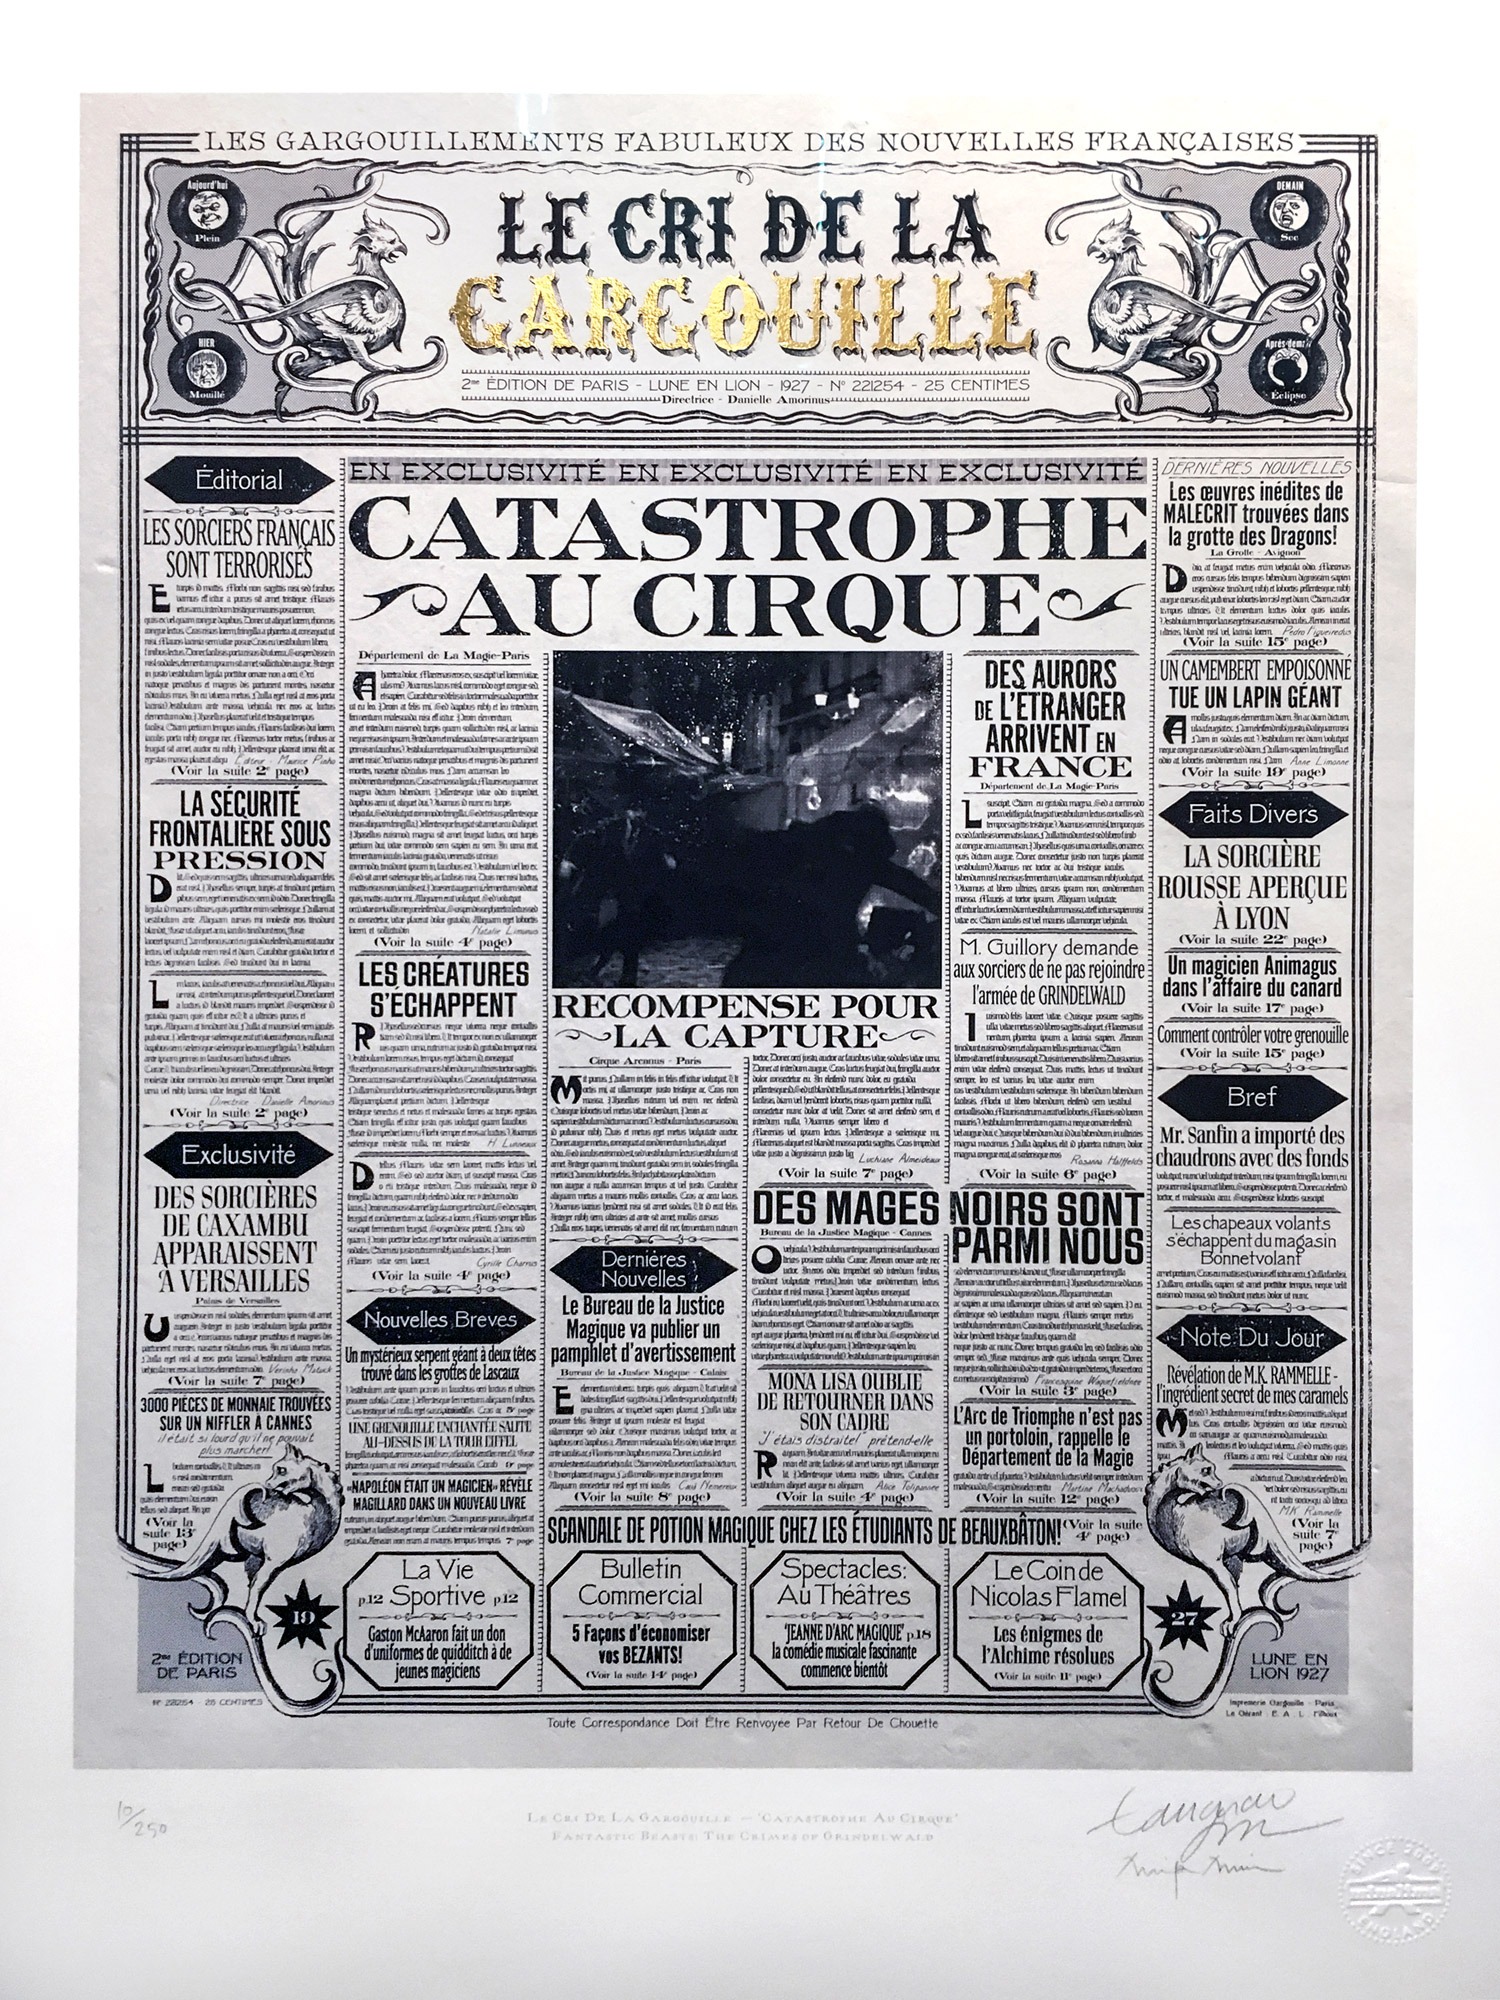 """MinaLima has created several beautifully crafted wizarding newspapers, such as """"Le Cri de la Gargouille""""."""